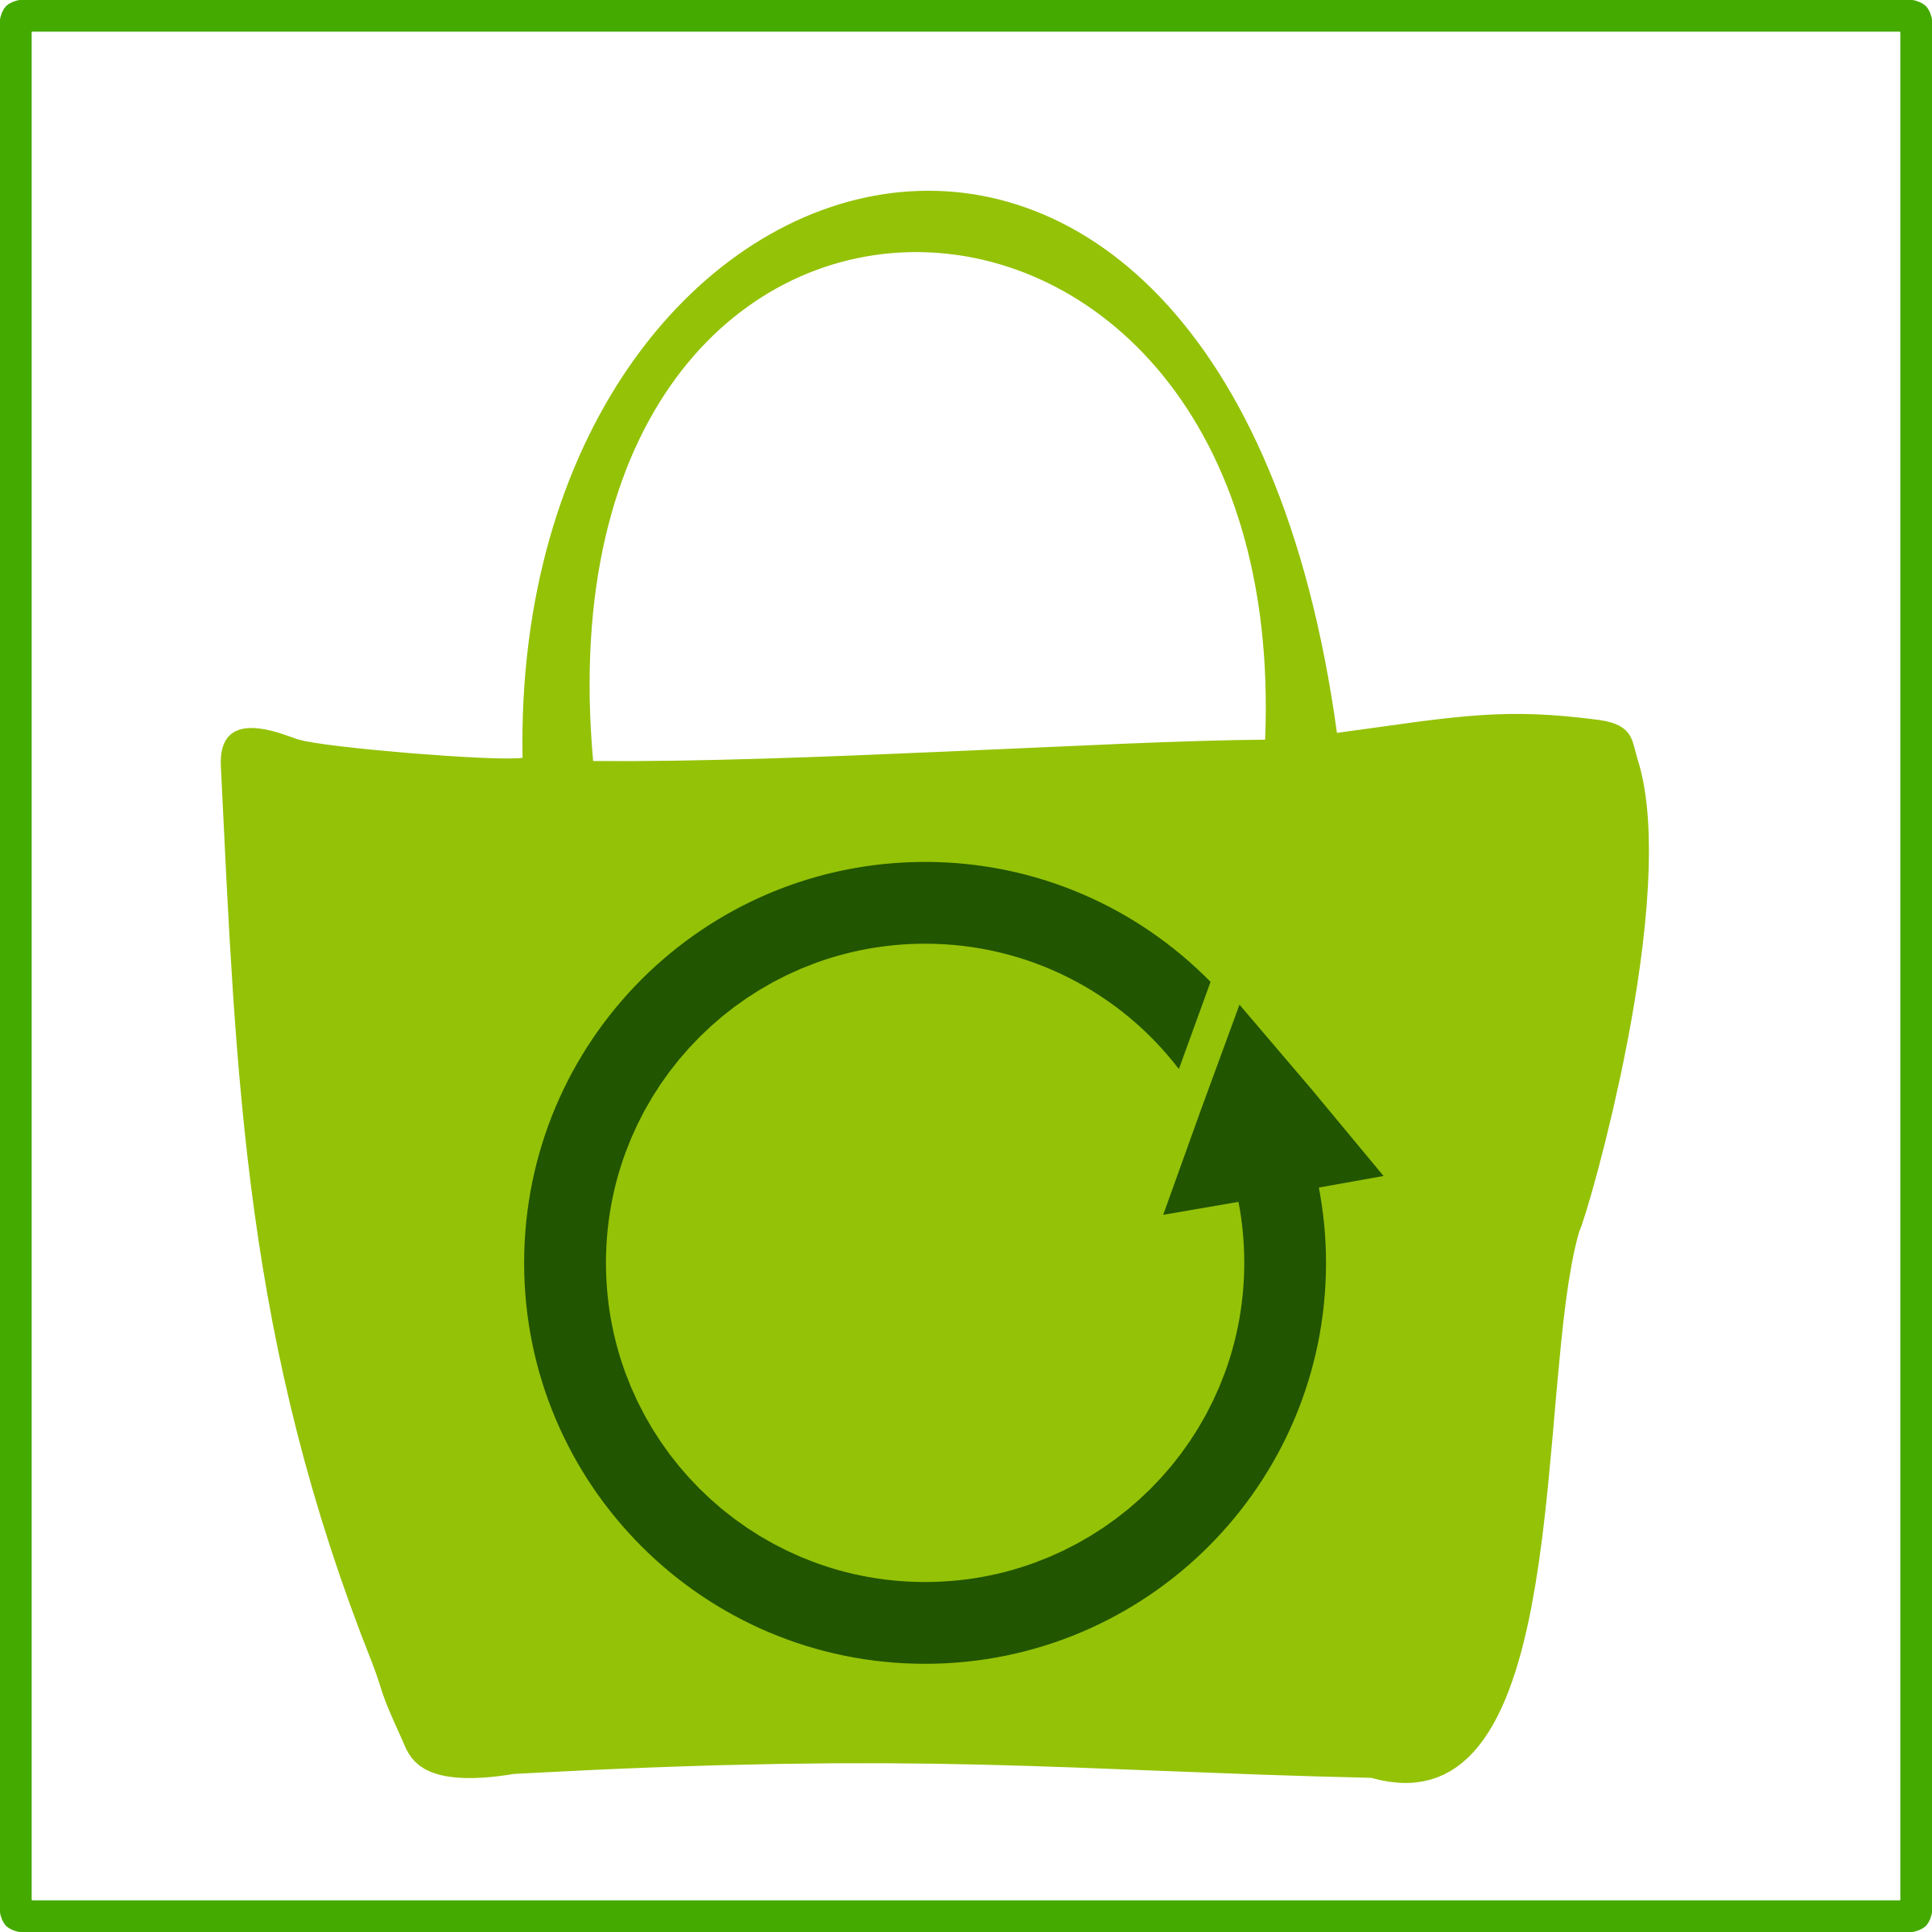 eco green shopping icon by dominiquechappard